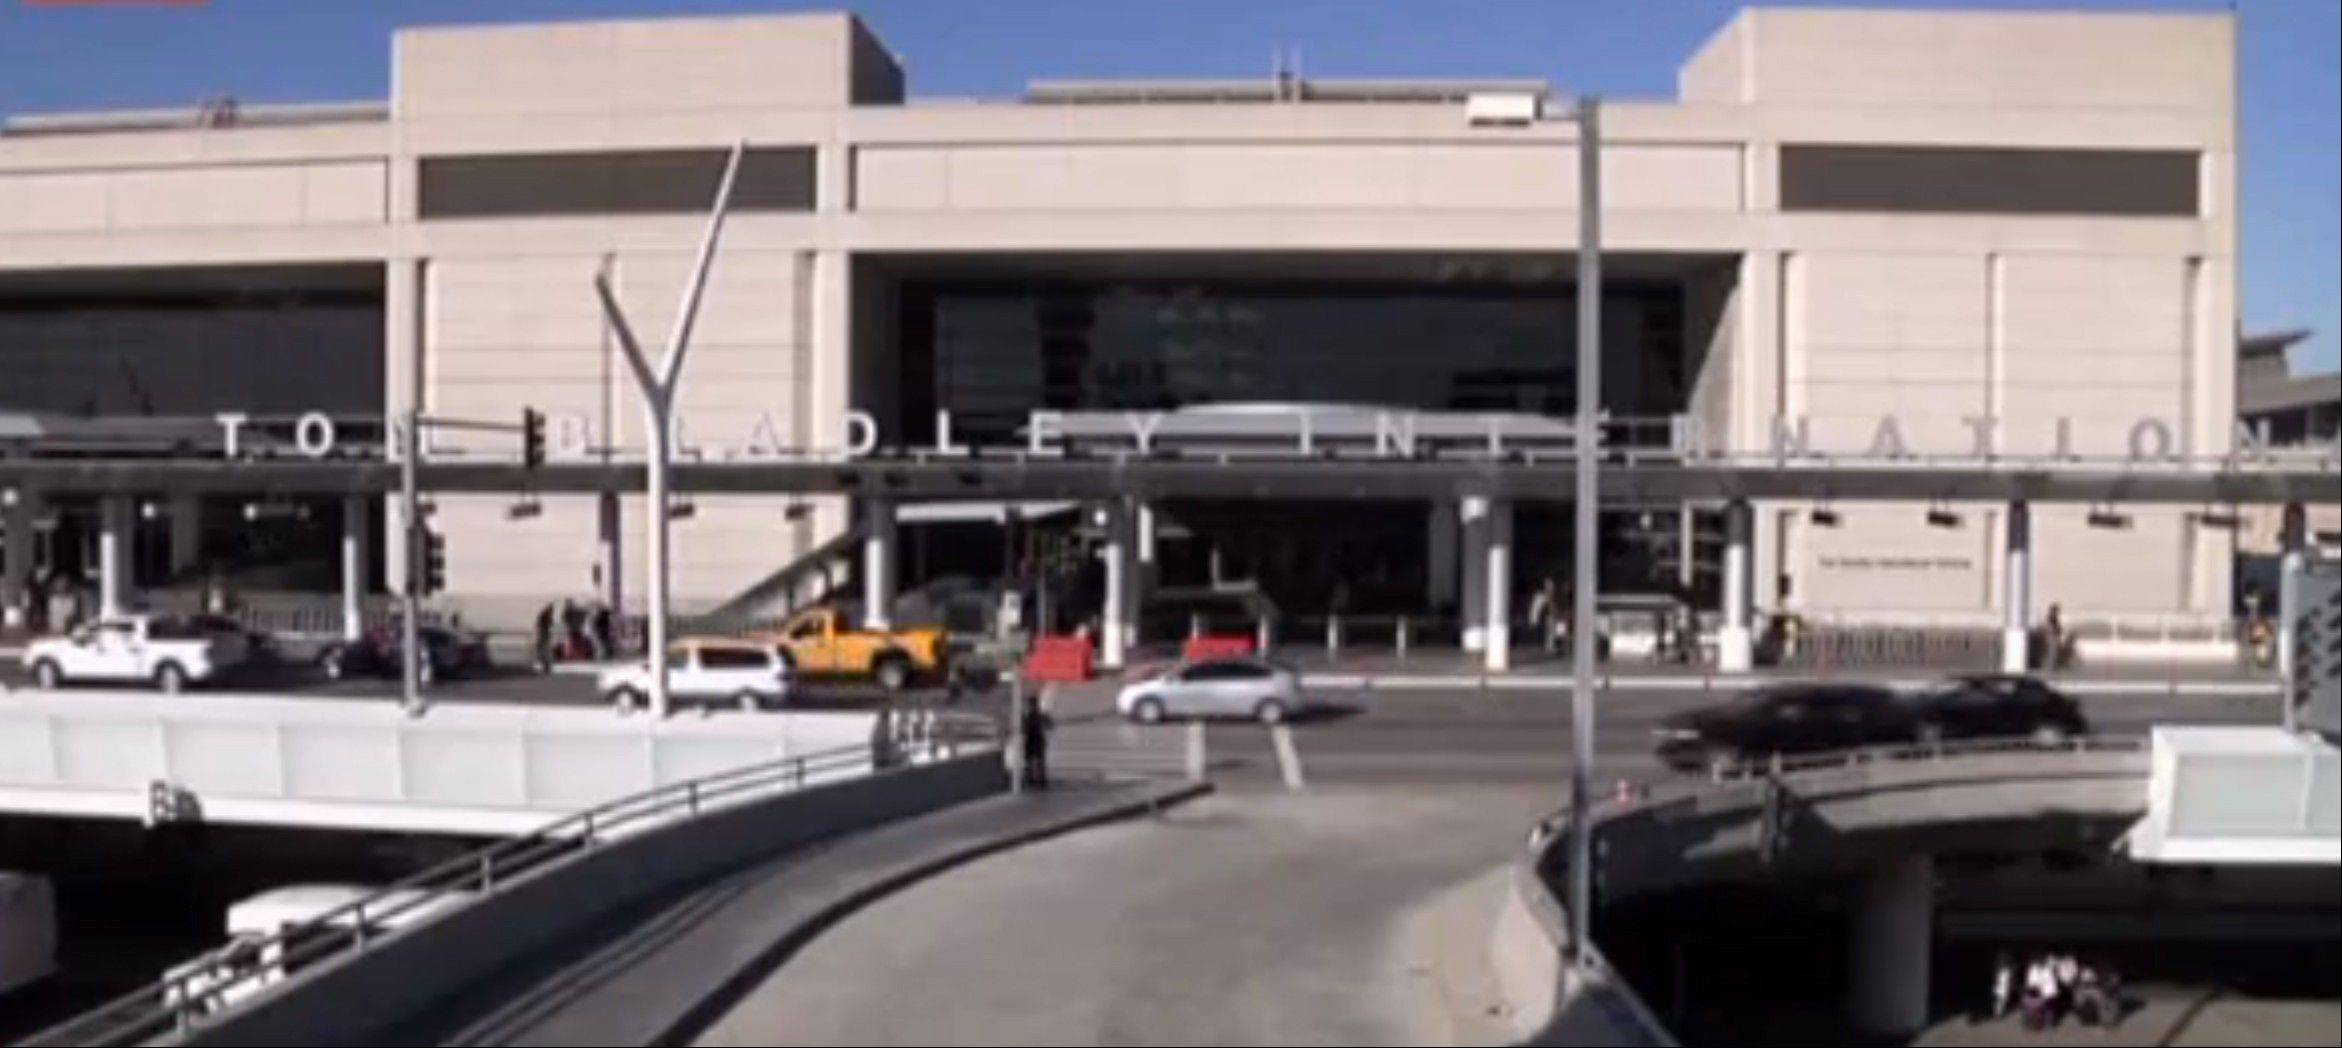 Associated PressA baggage handler was arrested Tuesday in connection with dry ice explosions Sunday and Monday at Los Angeles International Airport after police stepped up patrols and increased its checks on employees. DiCarlo Bennett, a 28-year-old employee for the ground handling company Servisair, was booked for possession of a destructive device near an aircraft.